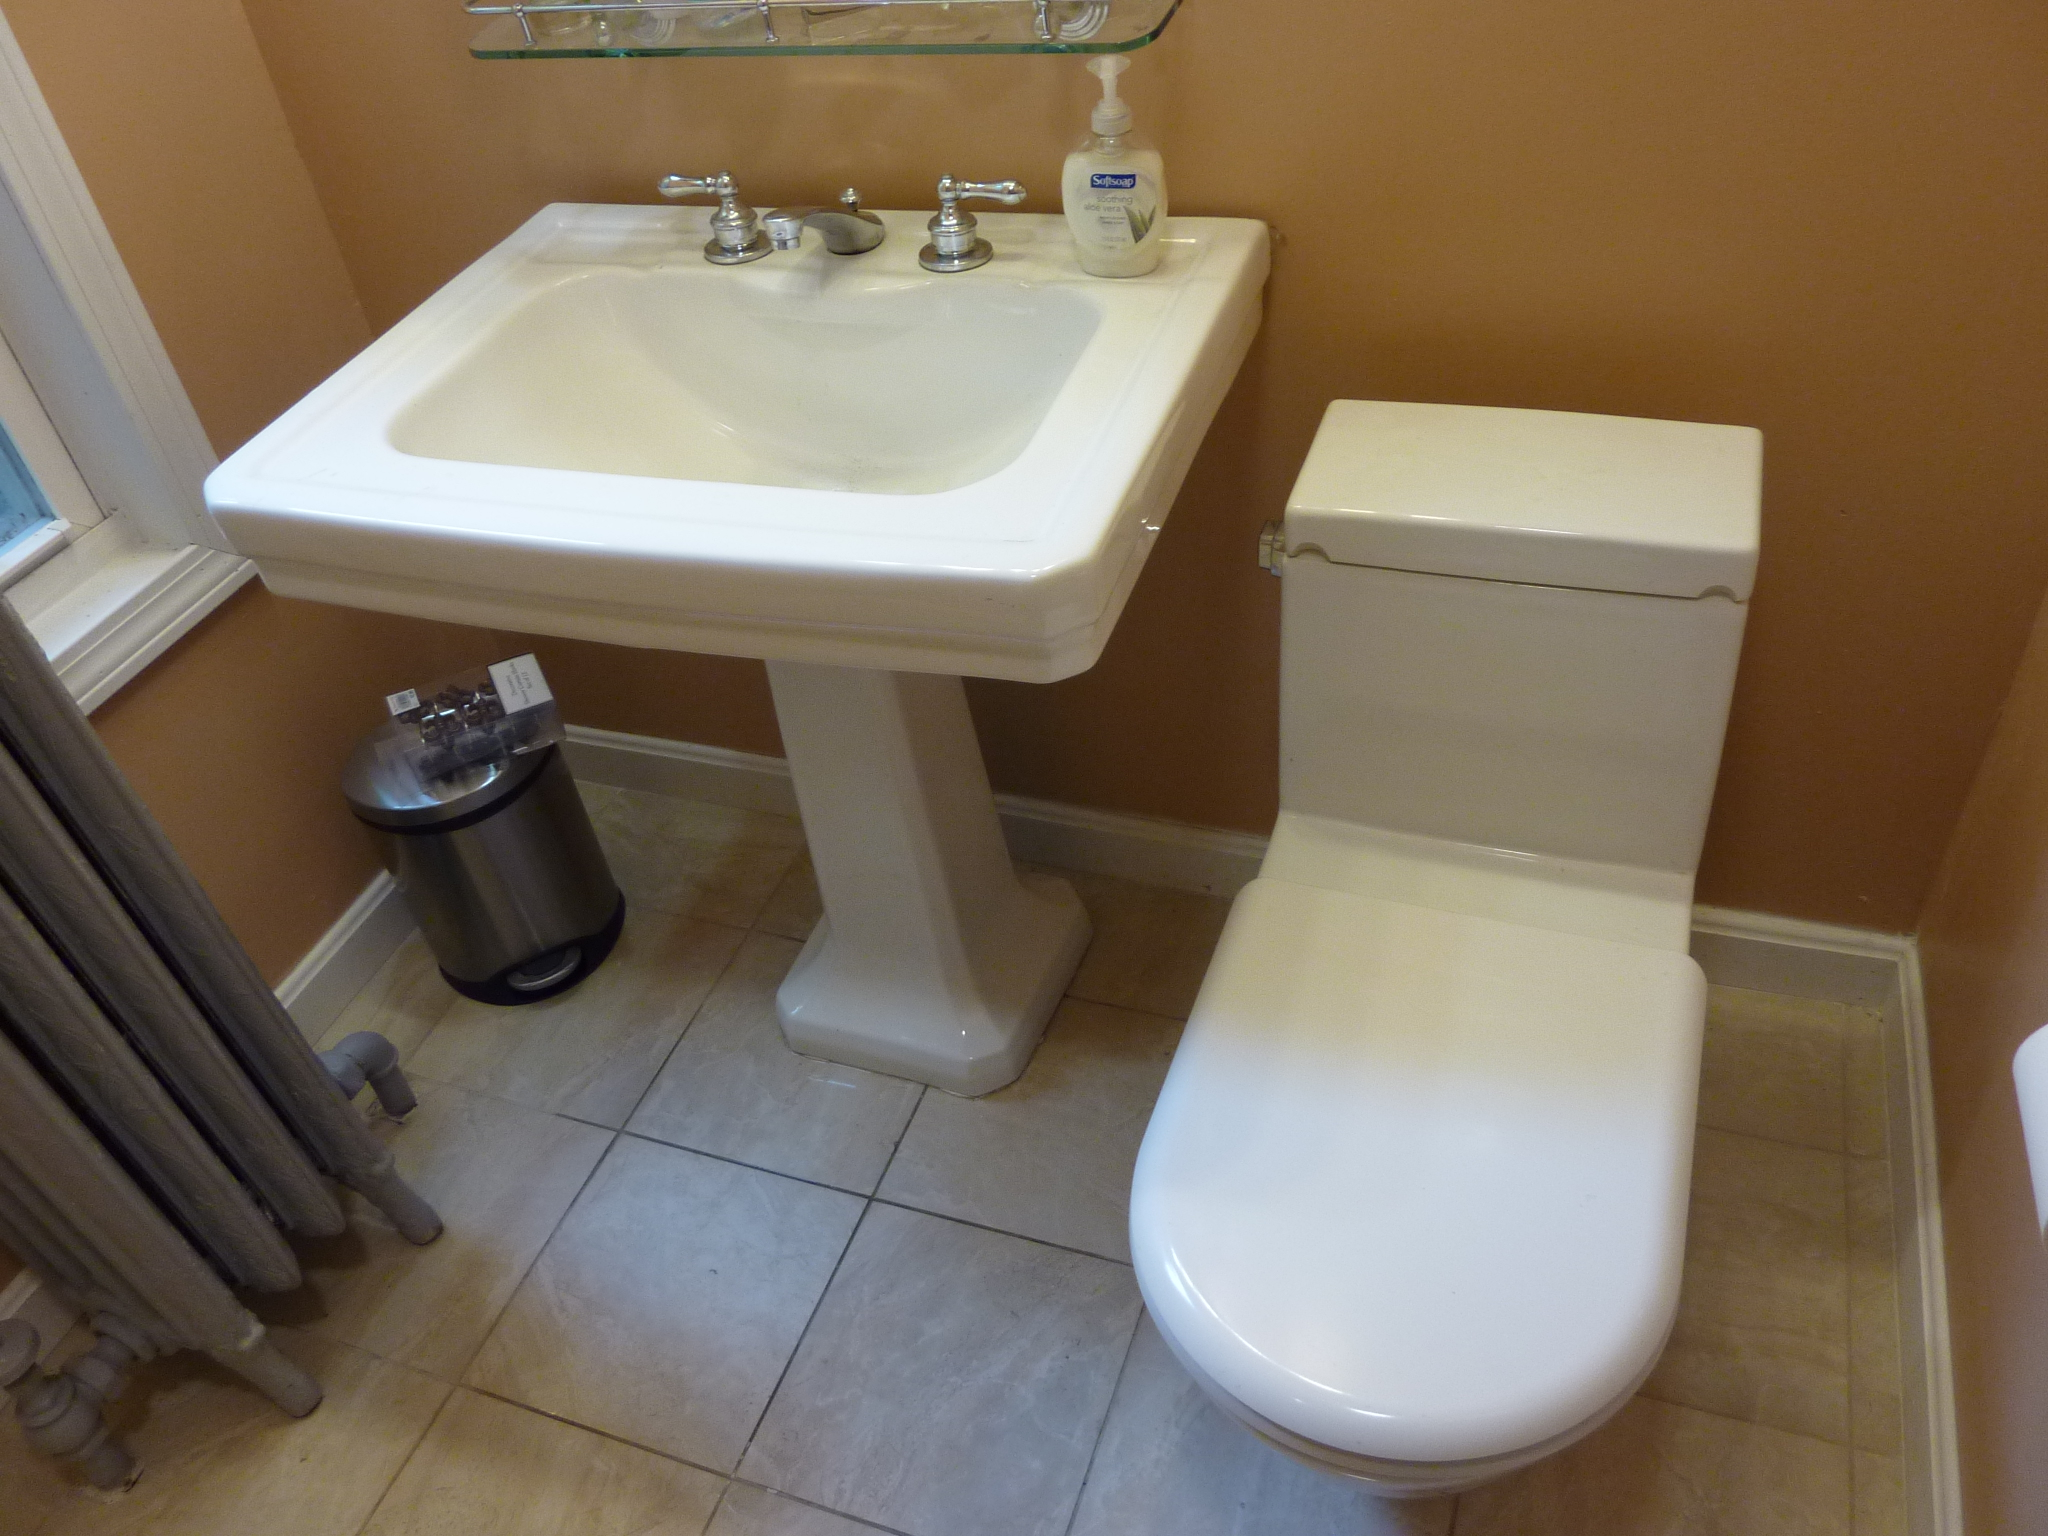 The high-quality sink and toilet were available for very affordable prices.